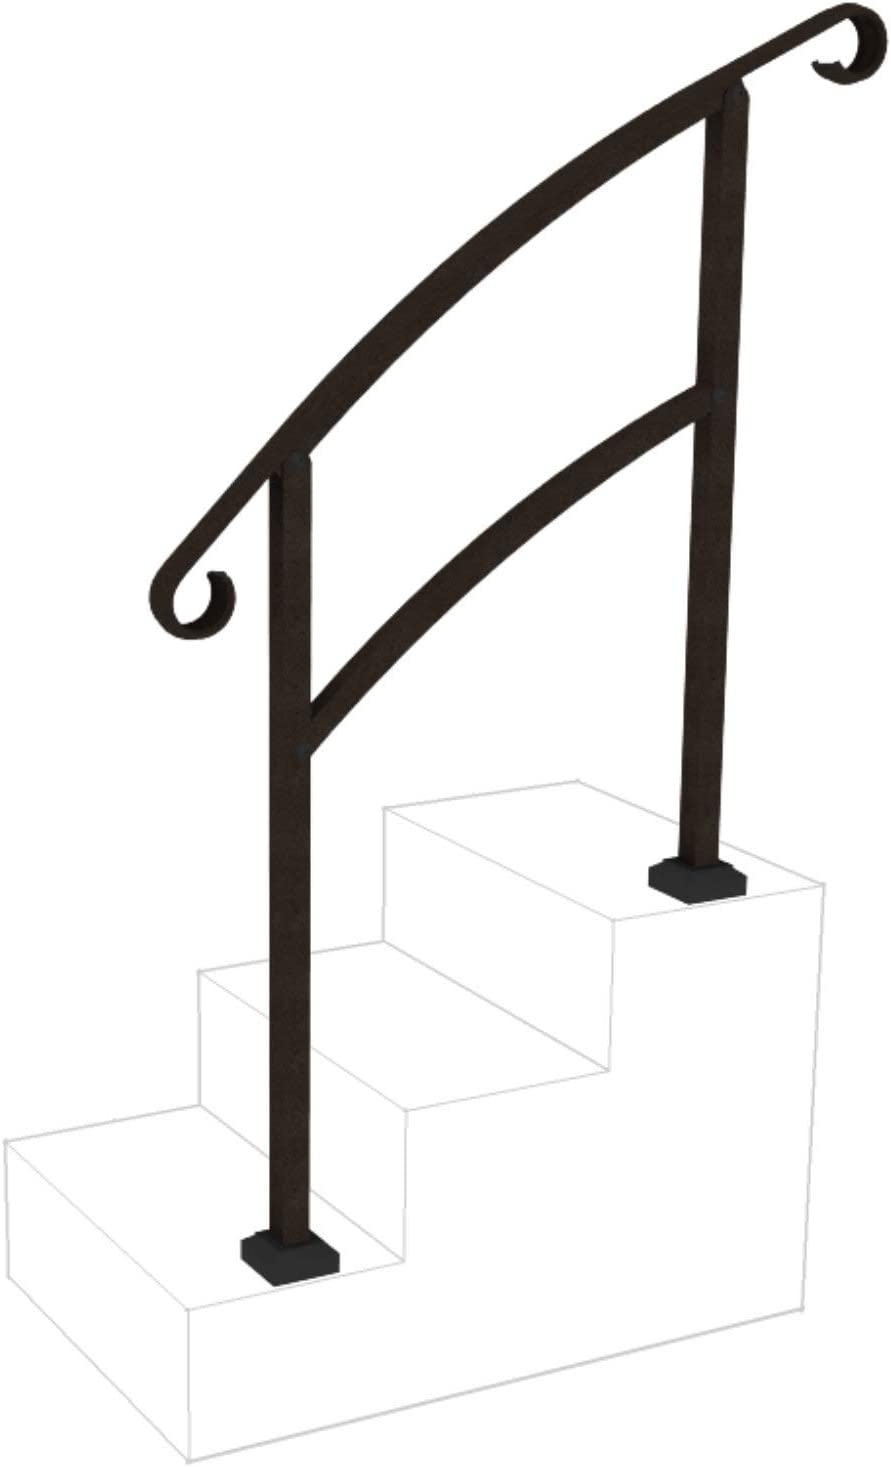 Instantrail 3 Step Adjustable Handrail Black Amazon Com | Railing For Concrete Steps | Stairwell | Retaining Wall | Concrete Slab Detail | Commercial | Safety